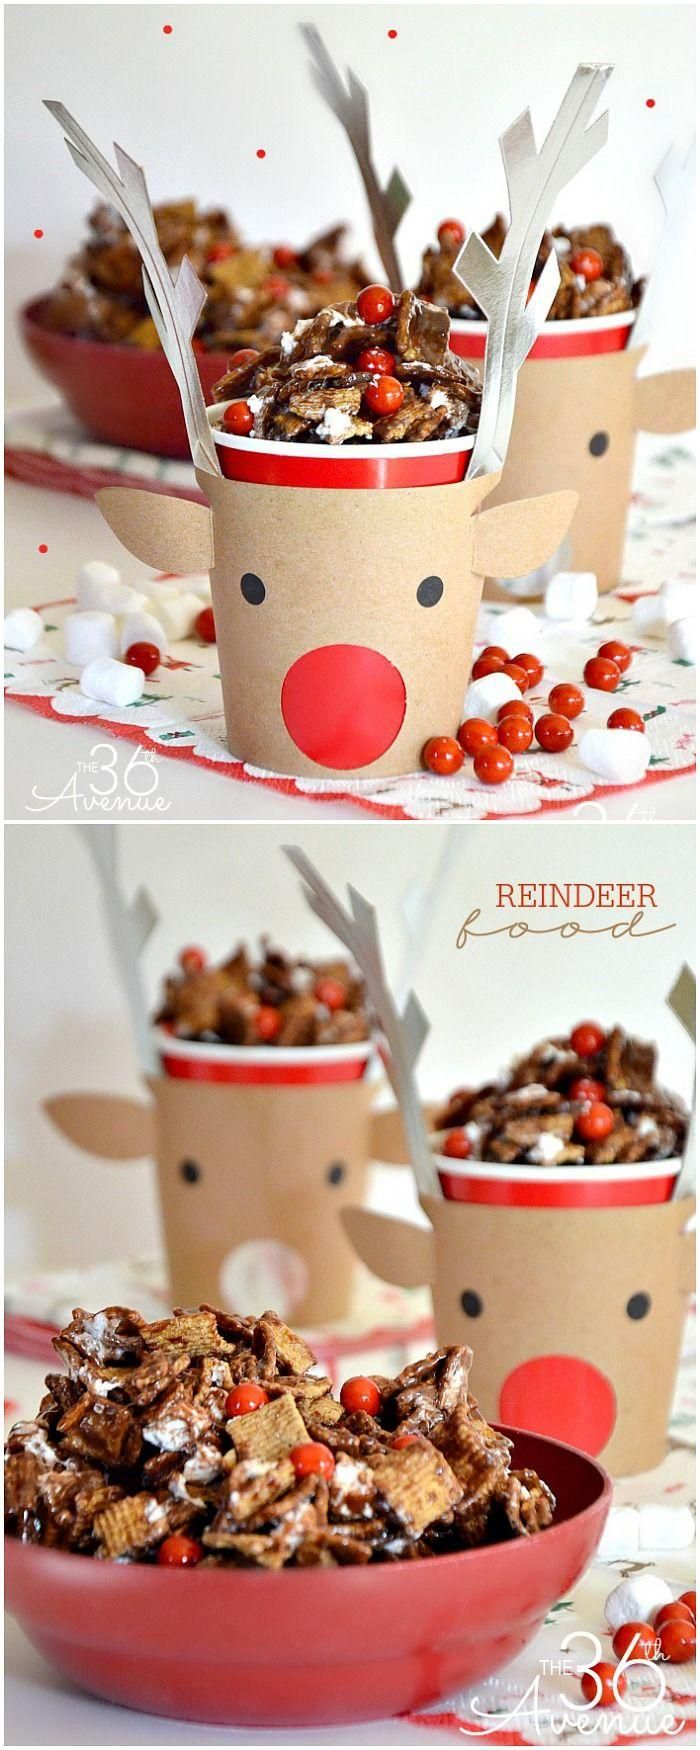 Christmas recipe reindeer food for humans yum cheers me christmas recipe reindeer food for humans yum forumfinder Choice Image